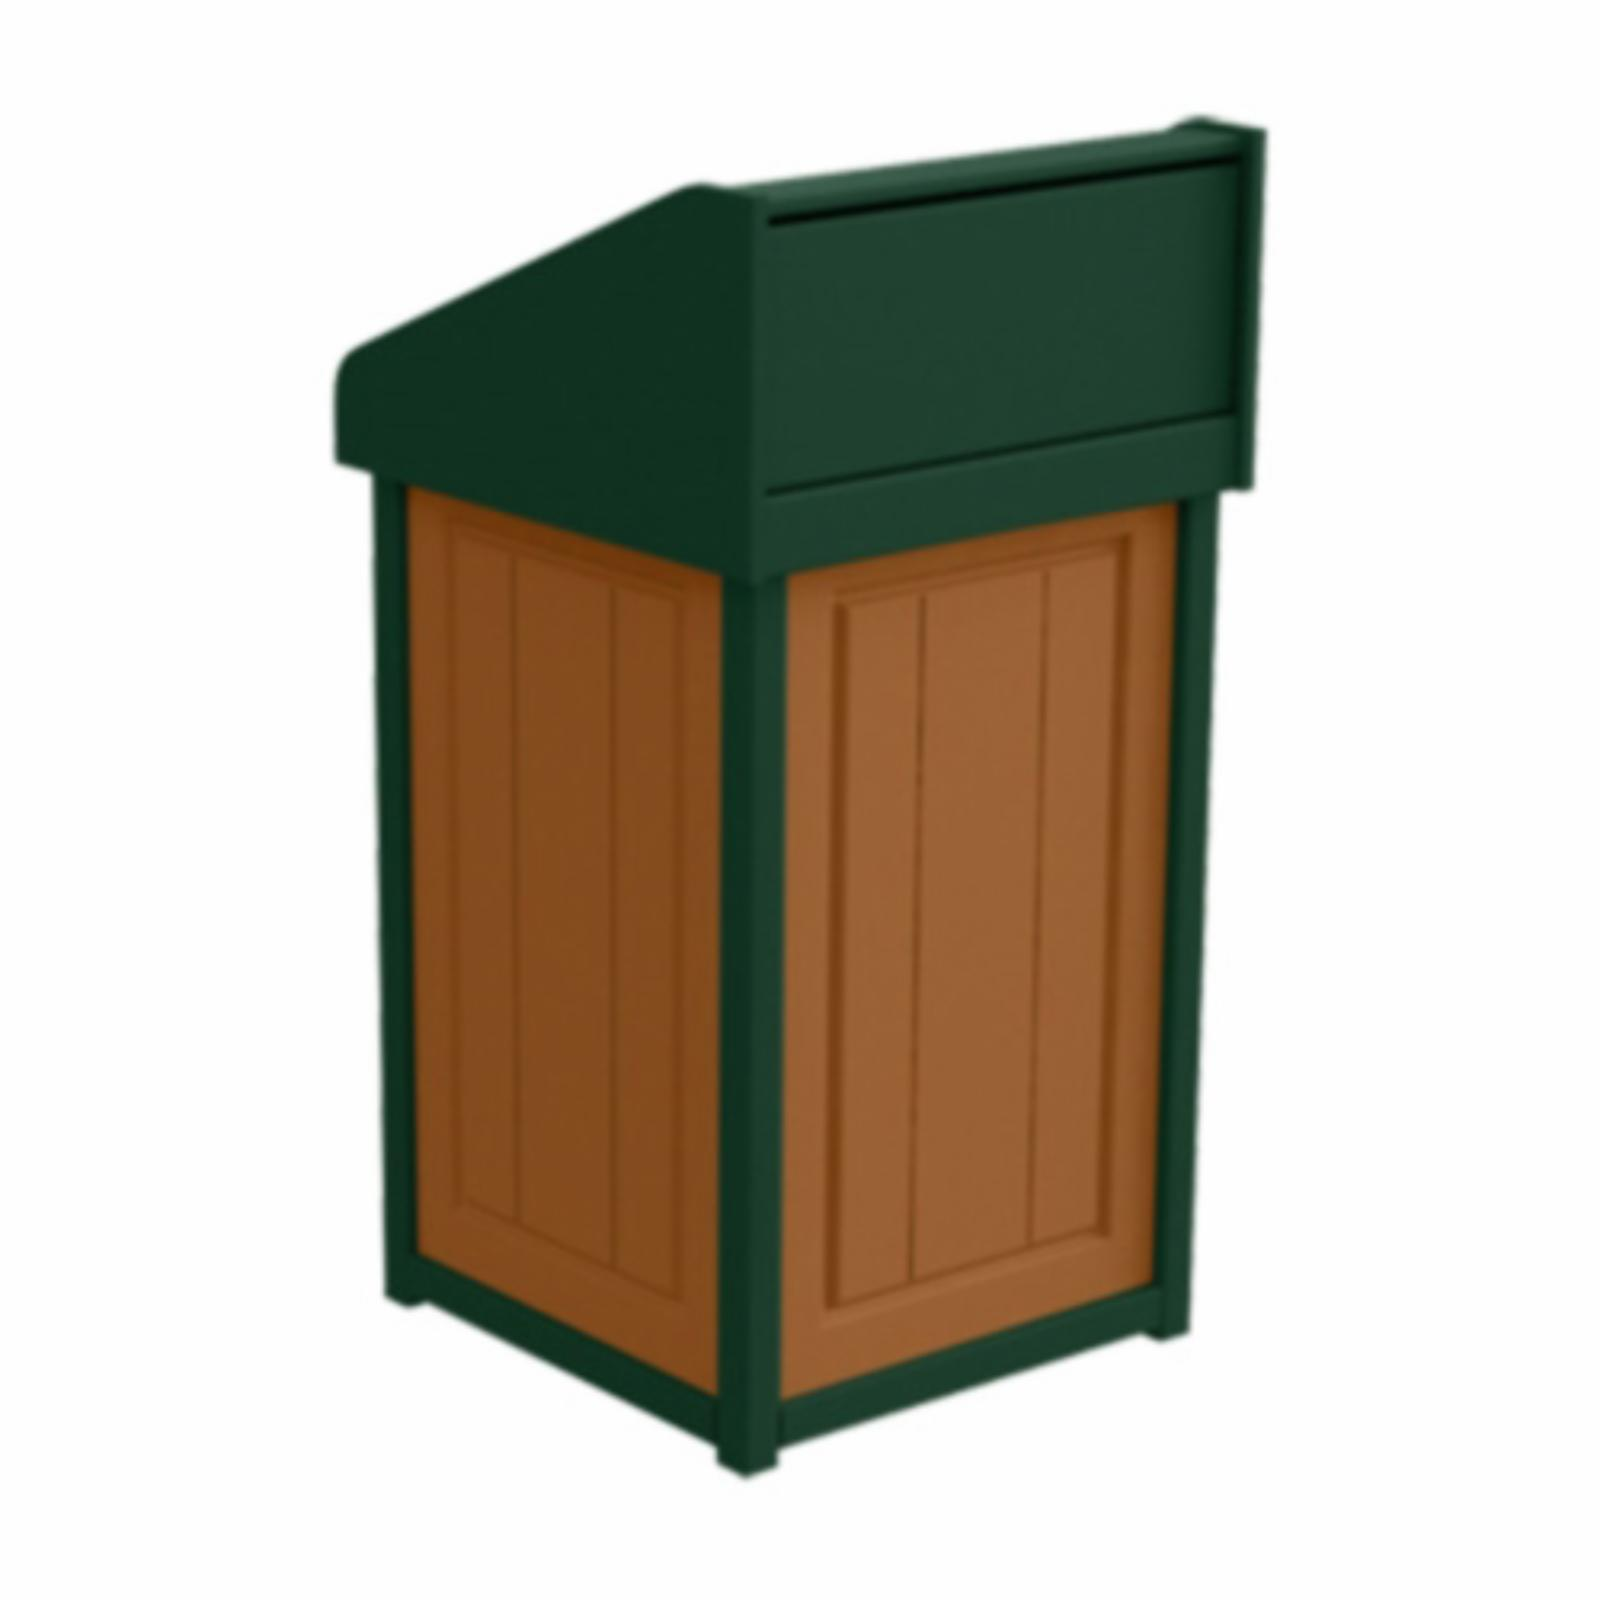 Treetop Products Two-Tone 33 Gallon Square Side Load Outdoor Push Door Trash Receptacle Cedar/Green - 4ZK4749-CD/GN